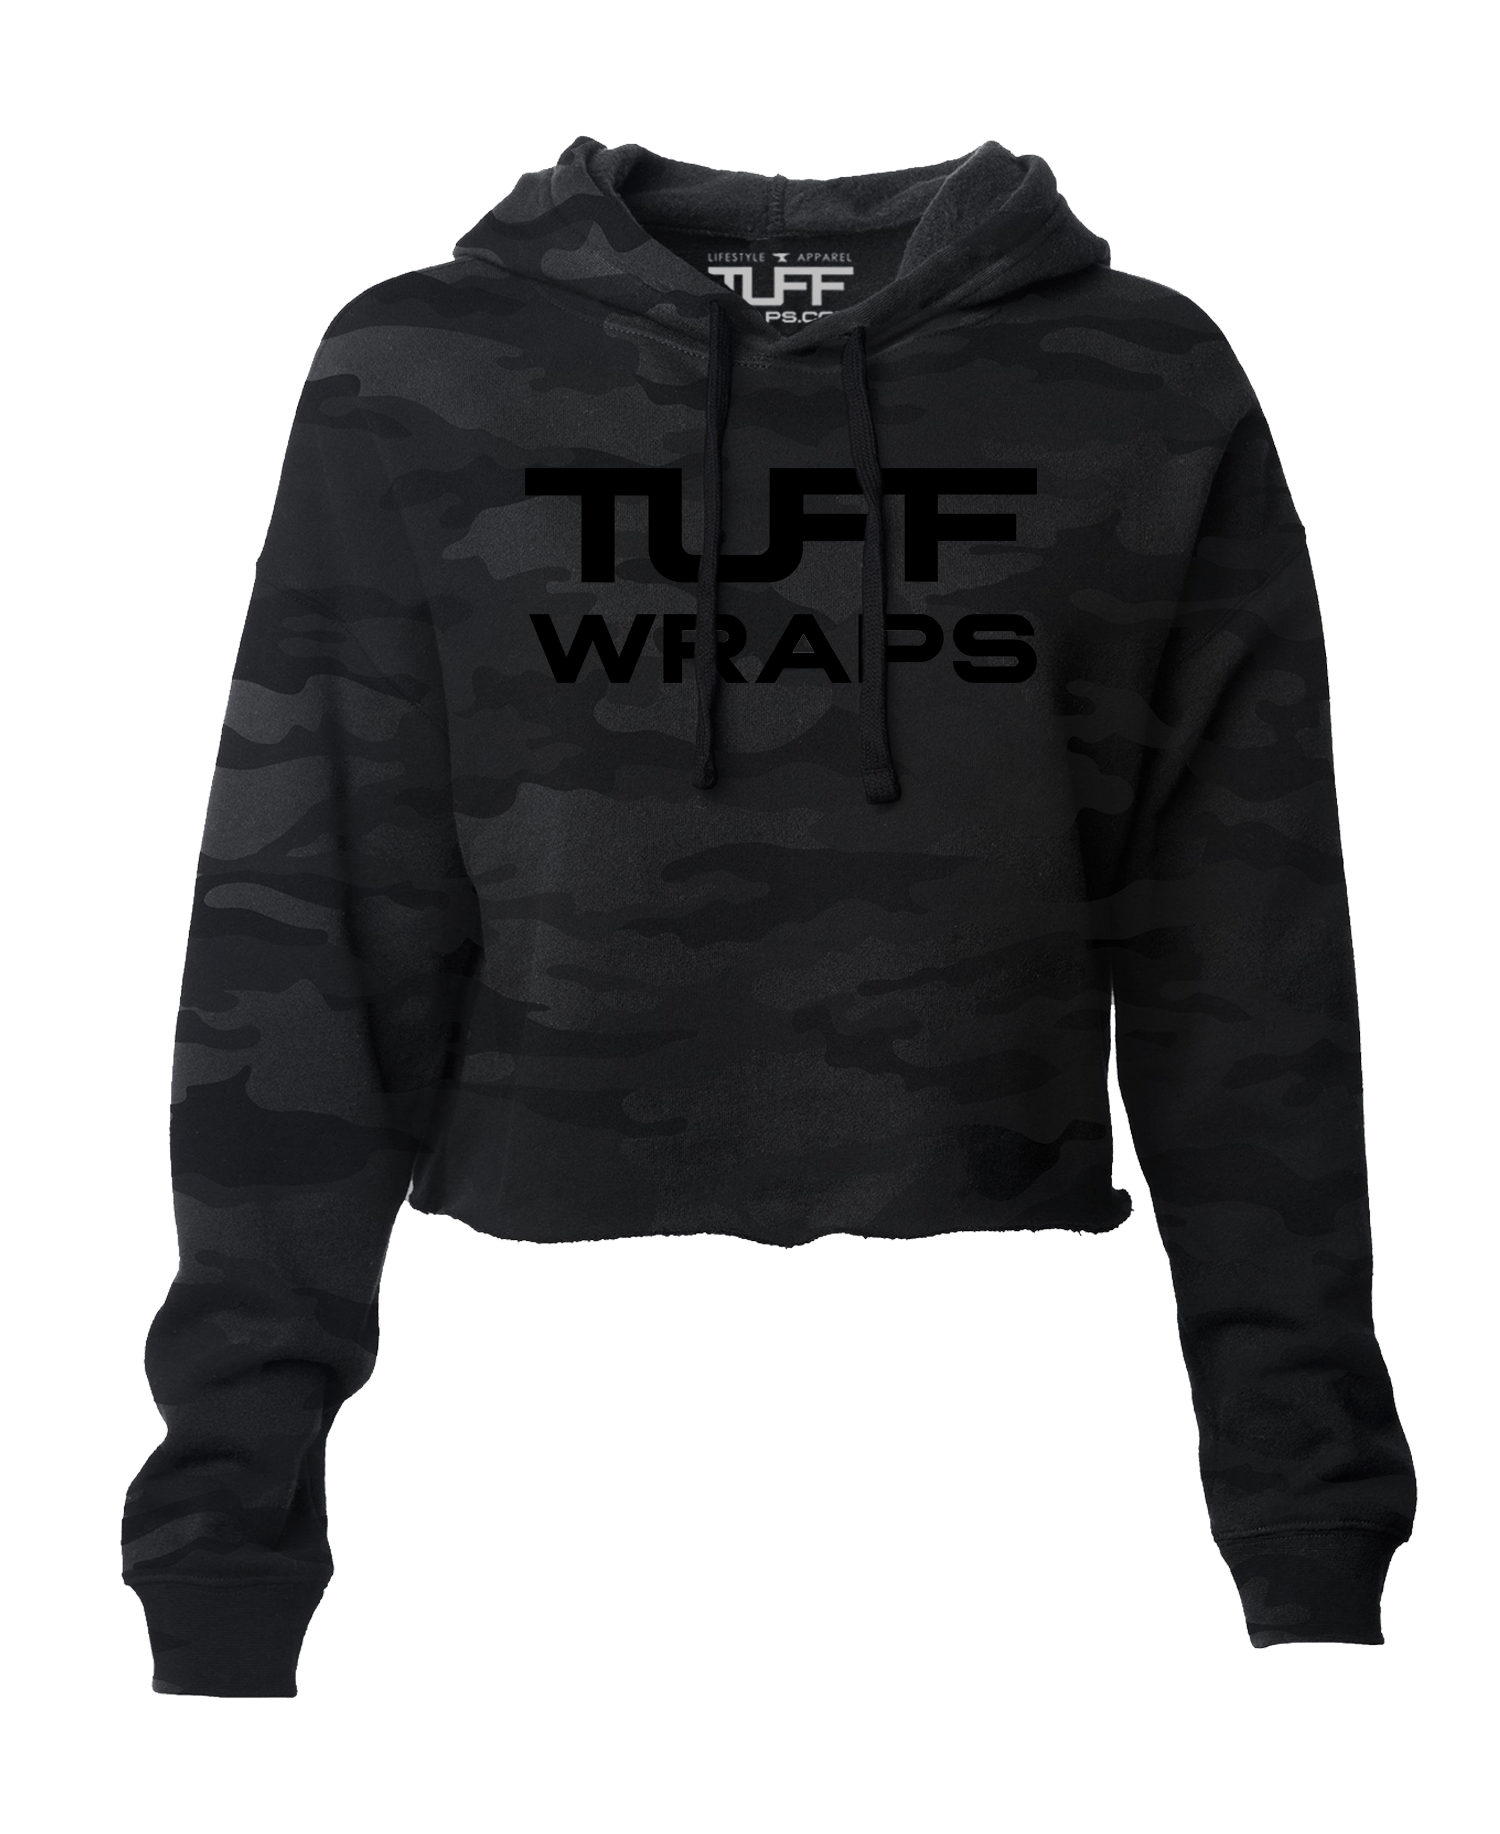 Tuffwraps Global Hooded Cropped Fleece - Black Camo